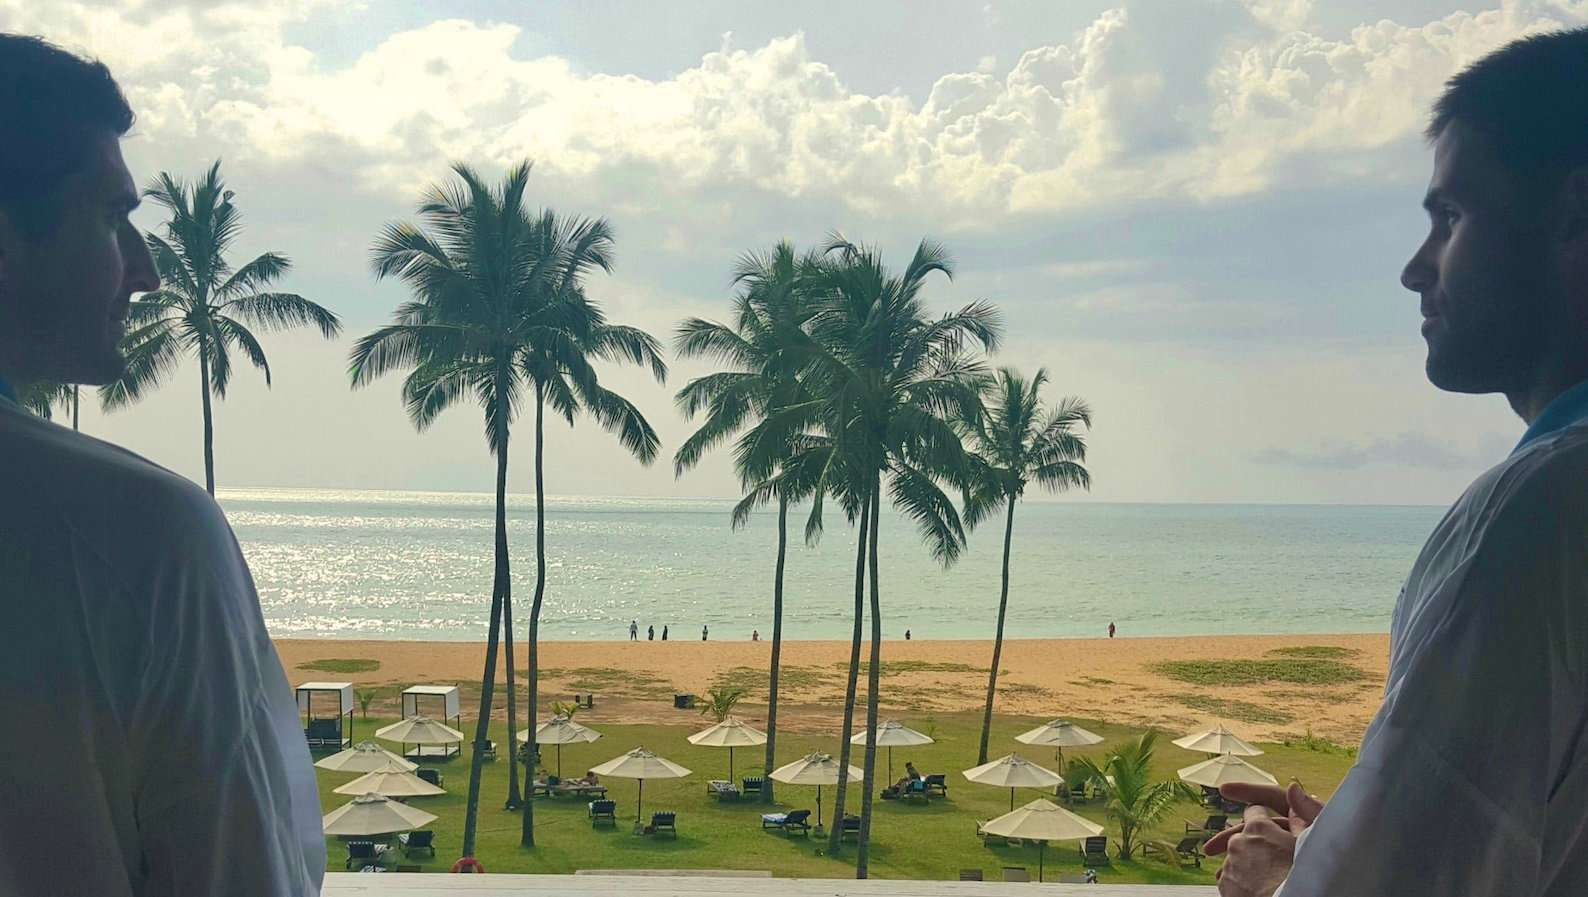 Negombo is very gay friendly with a small gay scene around the main beach area